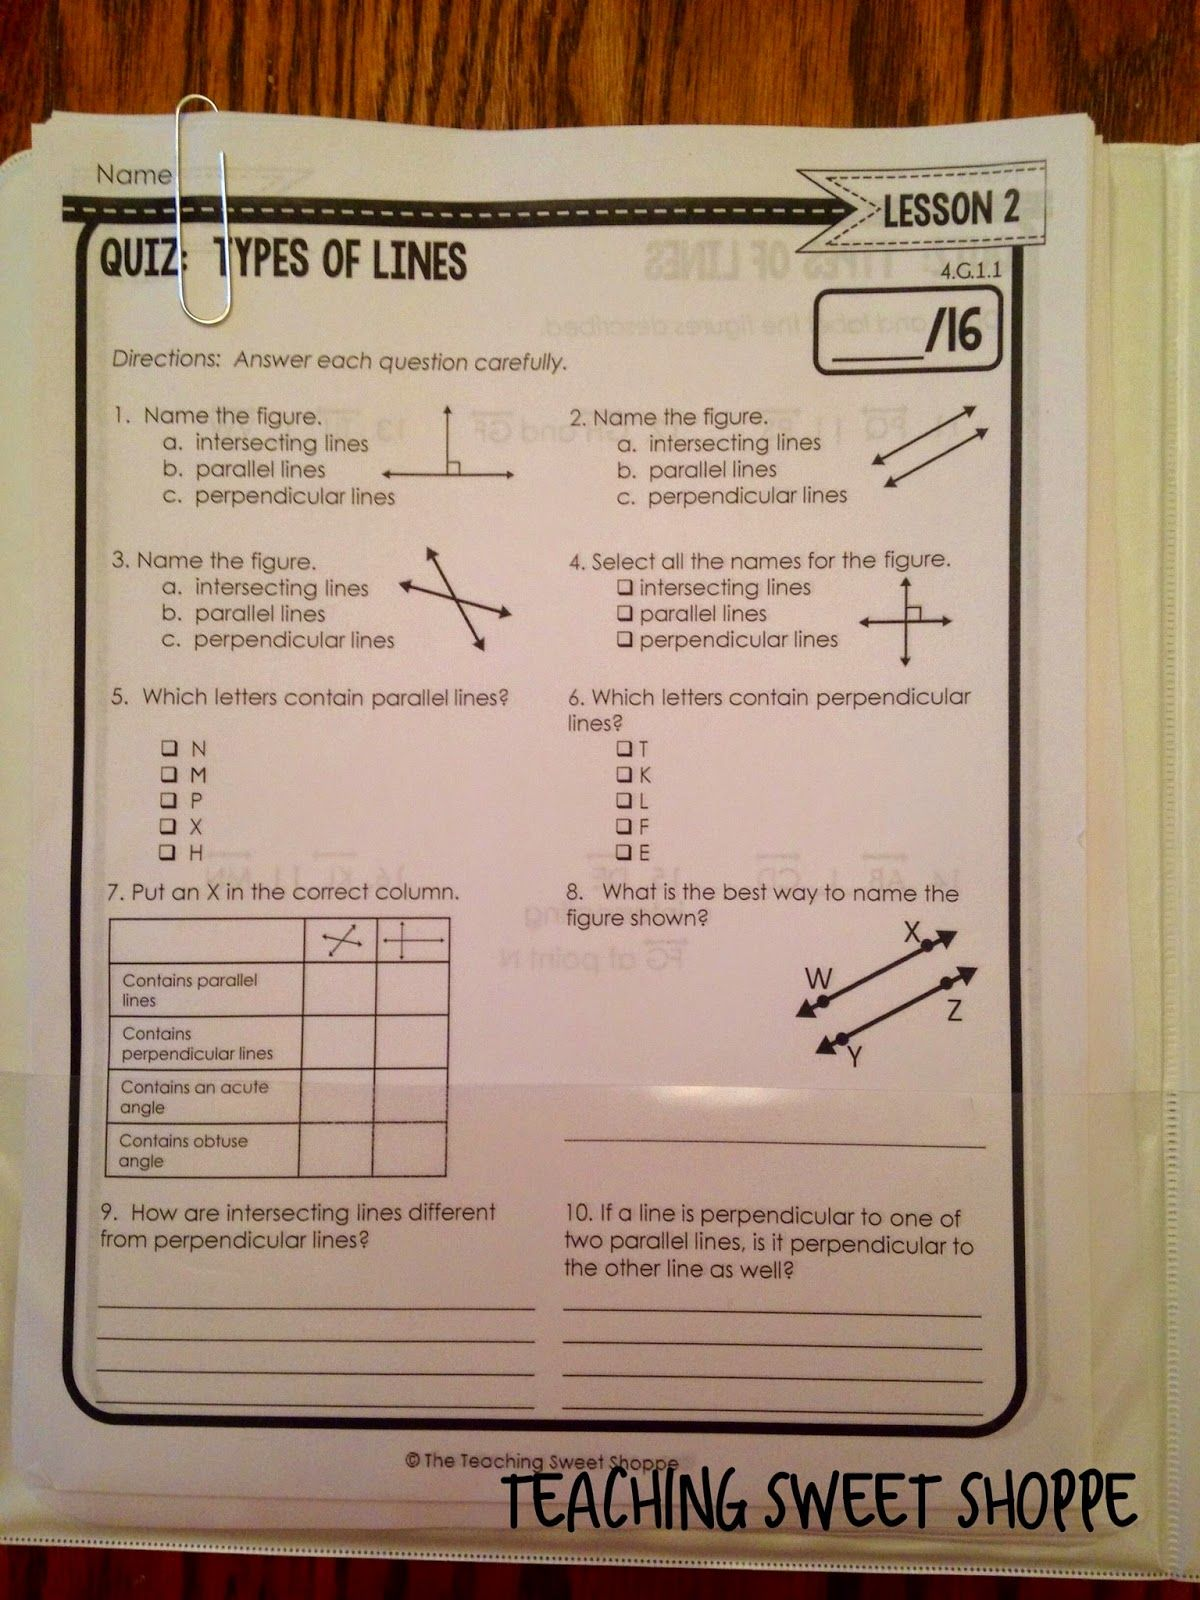 Parallel And Perpendicular Lines Worksheet For 4th Grade   Printable  Worksheets and Activities for Teachers [ 1600 x 1200 Pixel ]